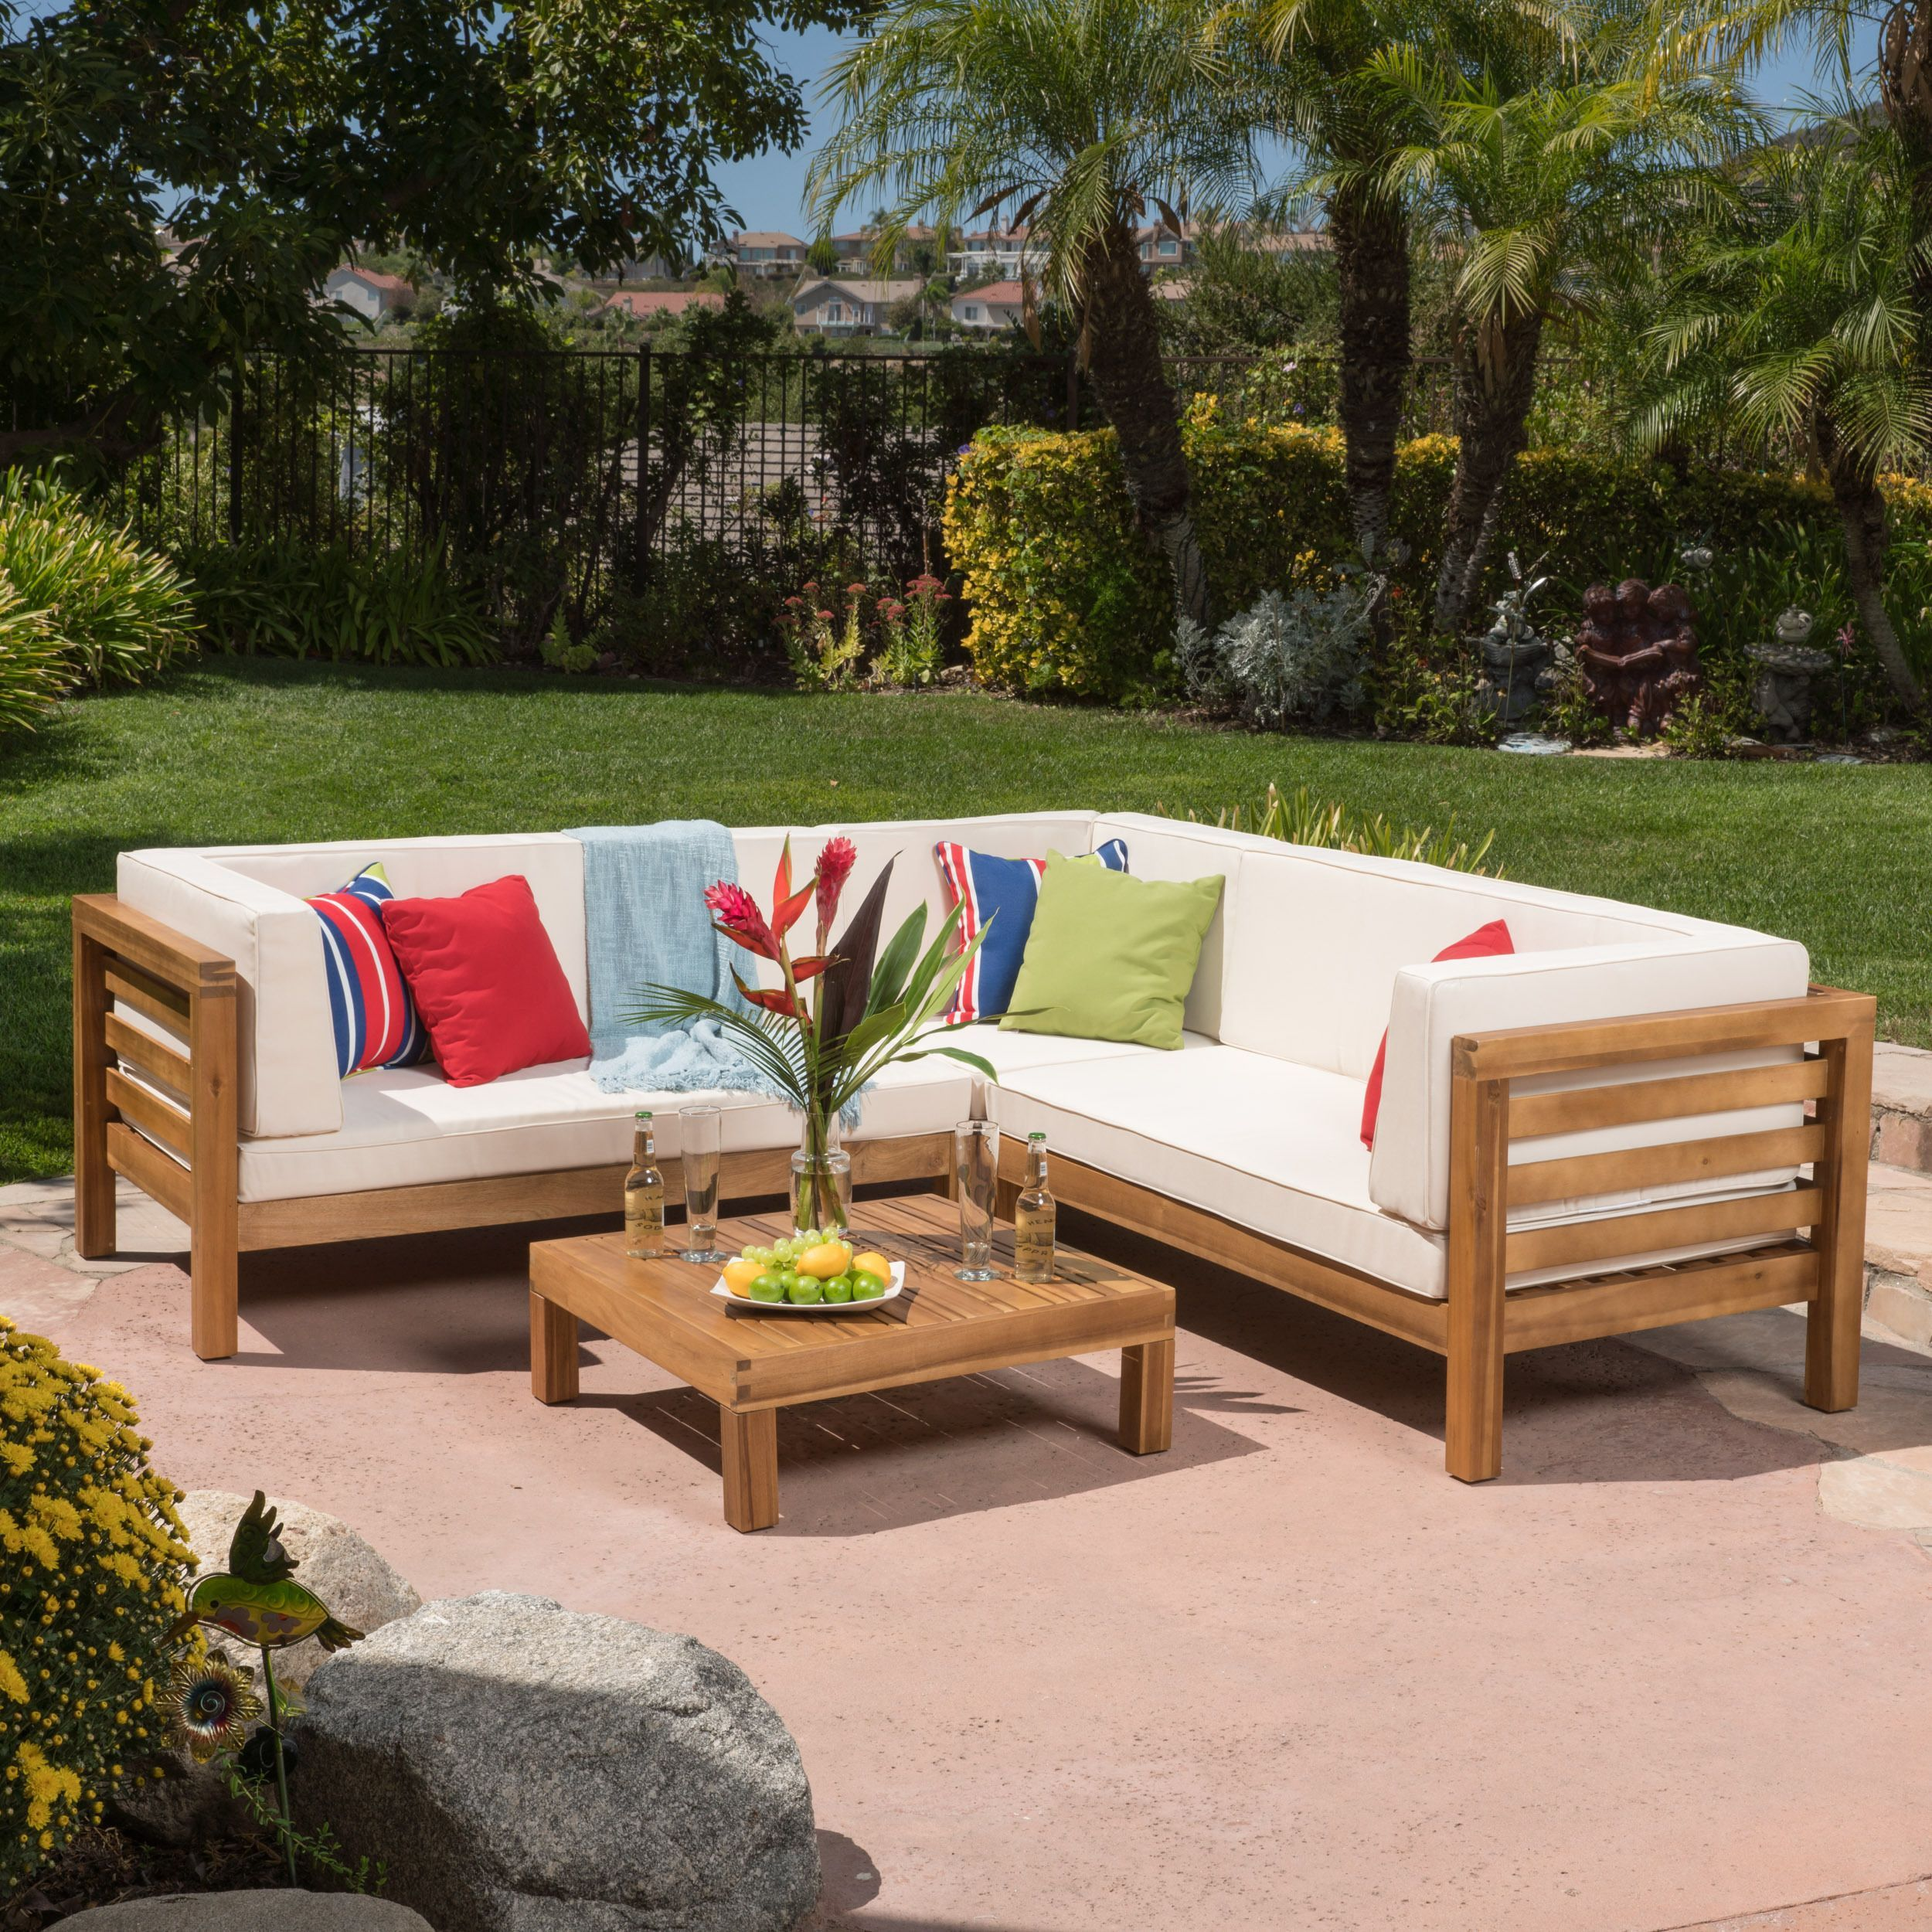 Outdoor Couch Set Oana Outdoor 4 Piece Acacia Wood Sectional Sofa Set With